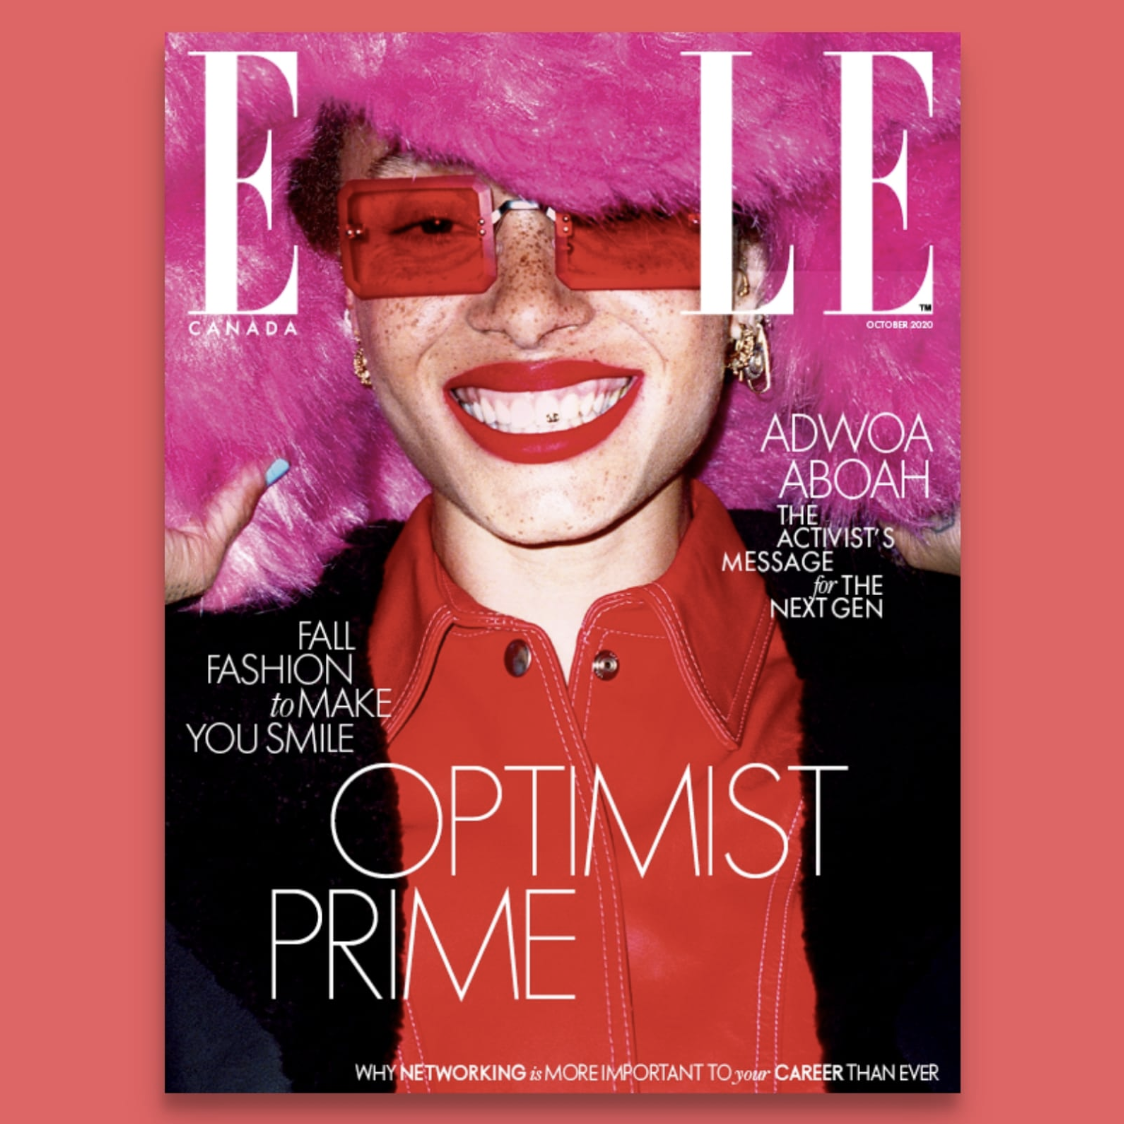 KO Media's Elle Canada Adwoa Aboah Cover covered by 360 Magazine